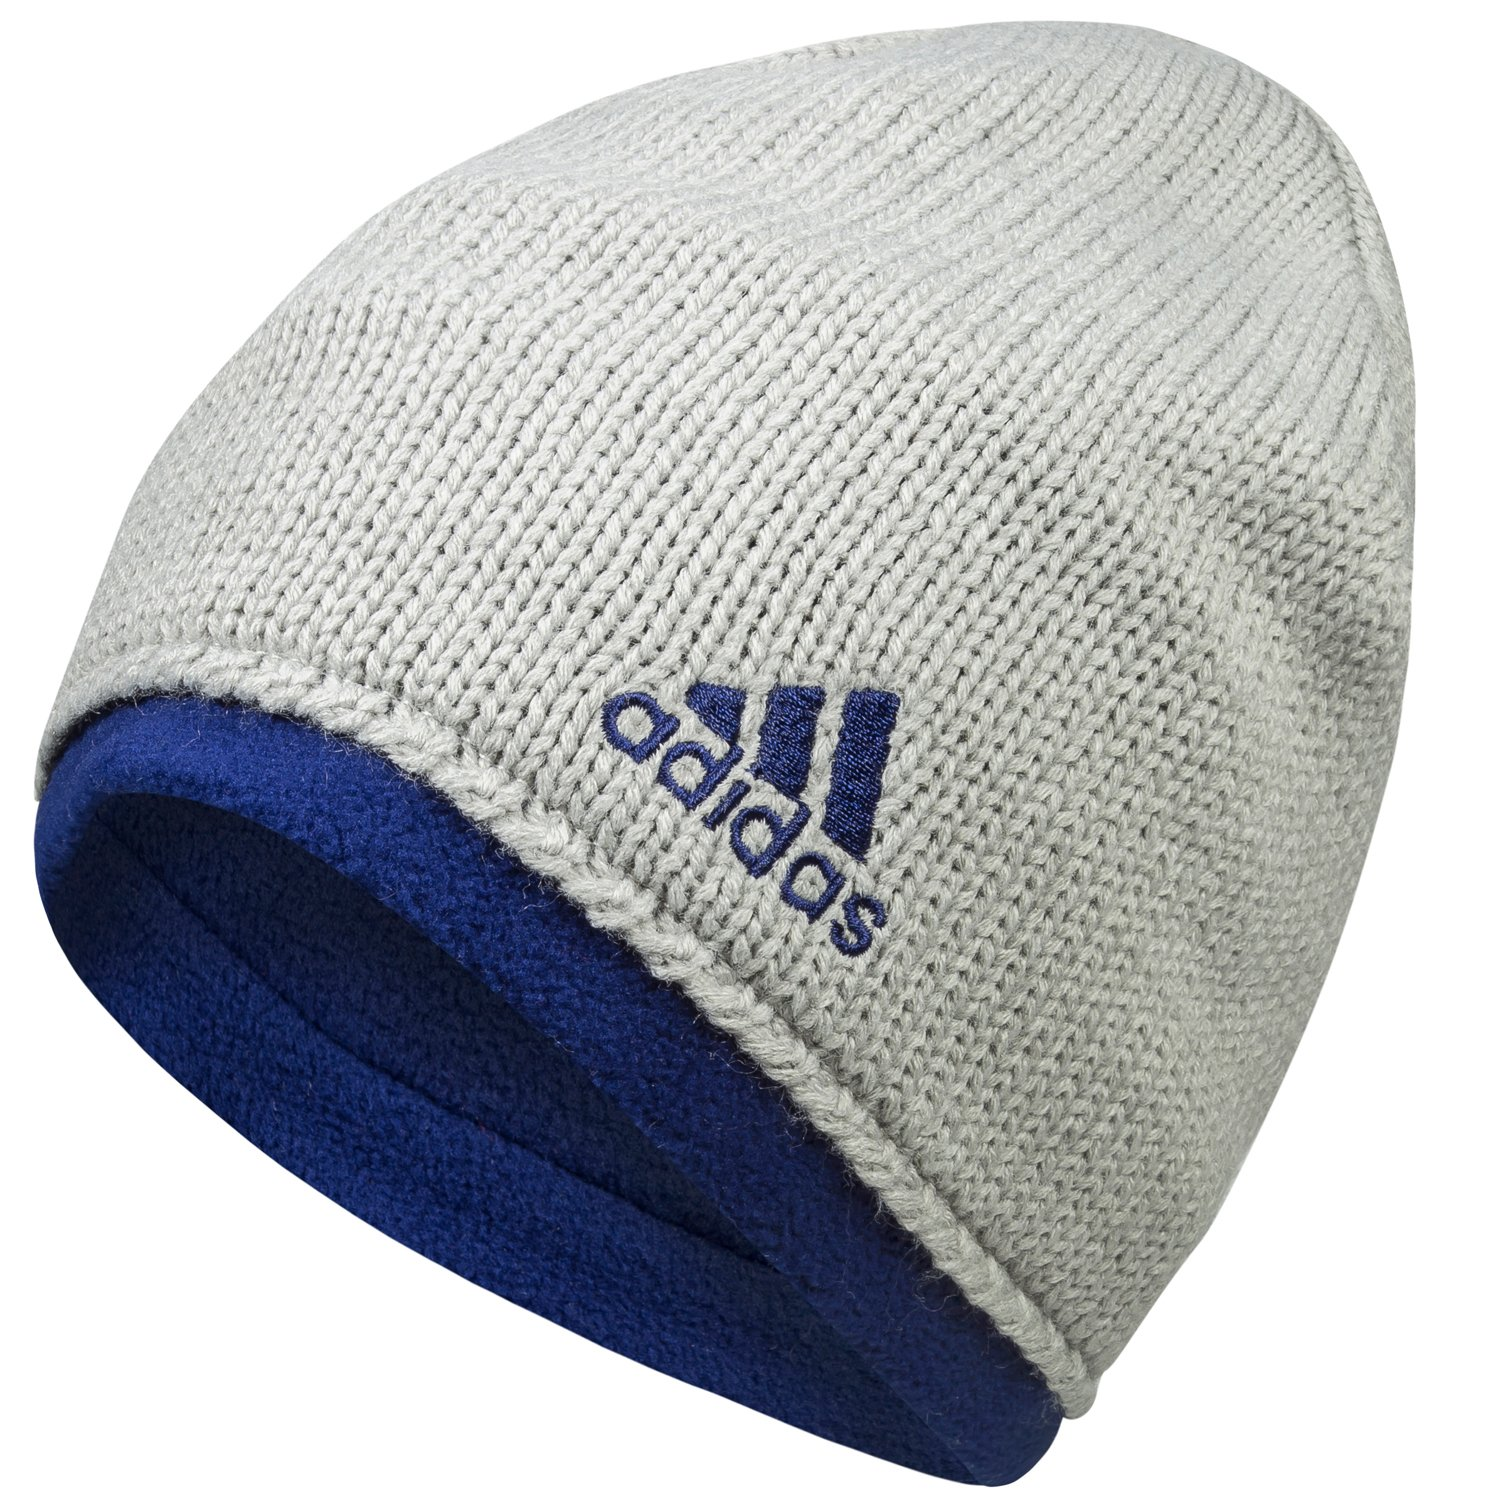 e6966b3aacc adidas Performance Climawarm Kids Beanie Hat - Grey - One Size   Amazon.co.uk  Sports   Outdoors